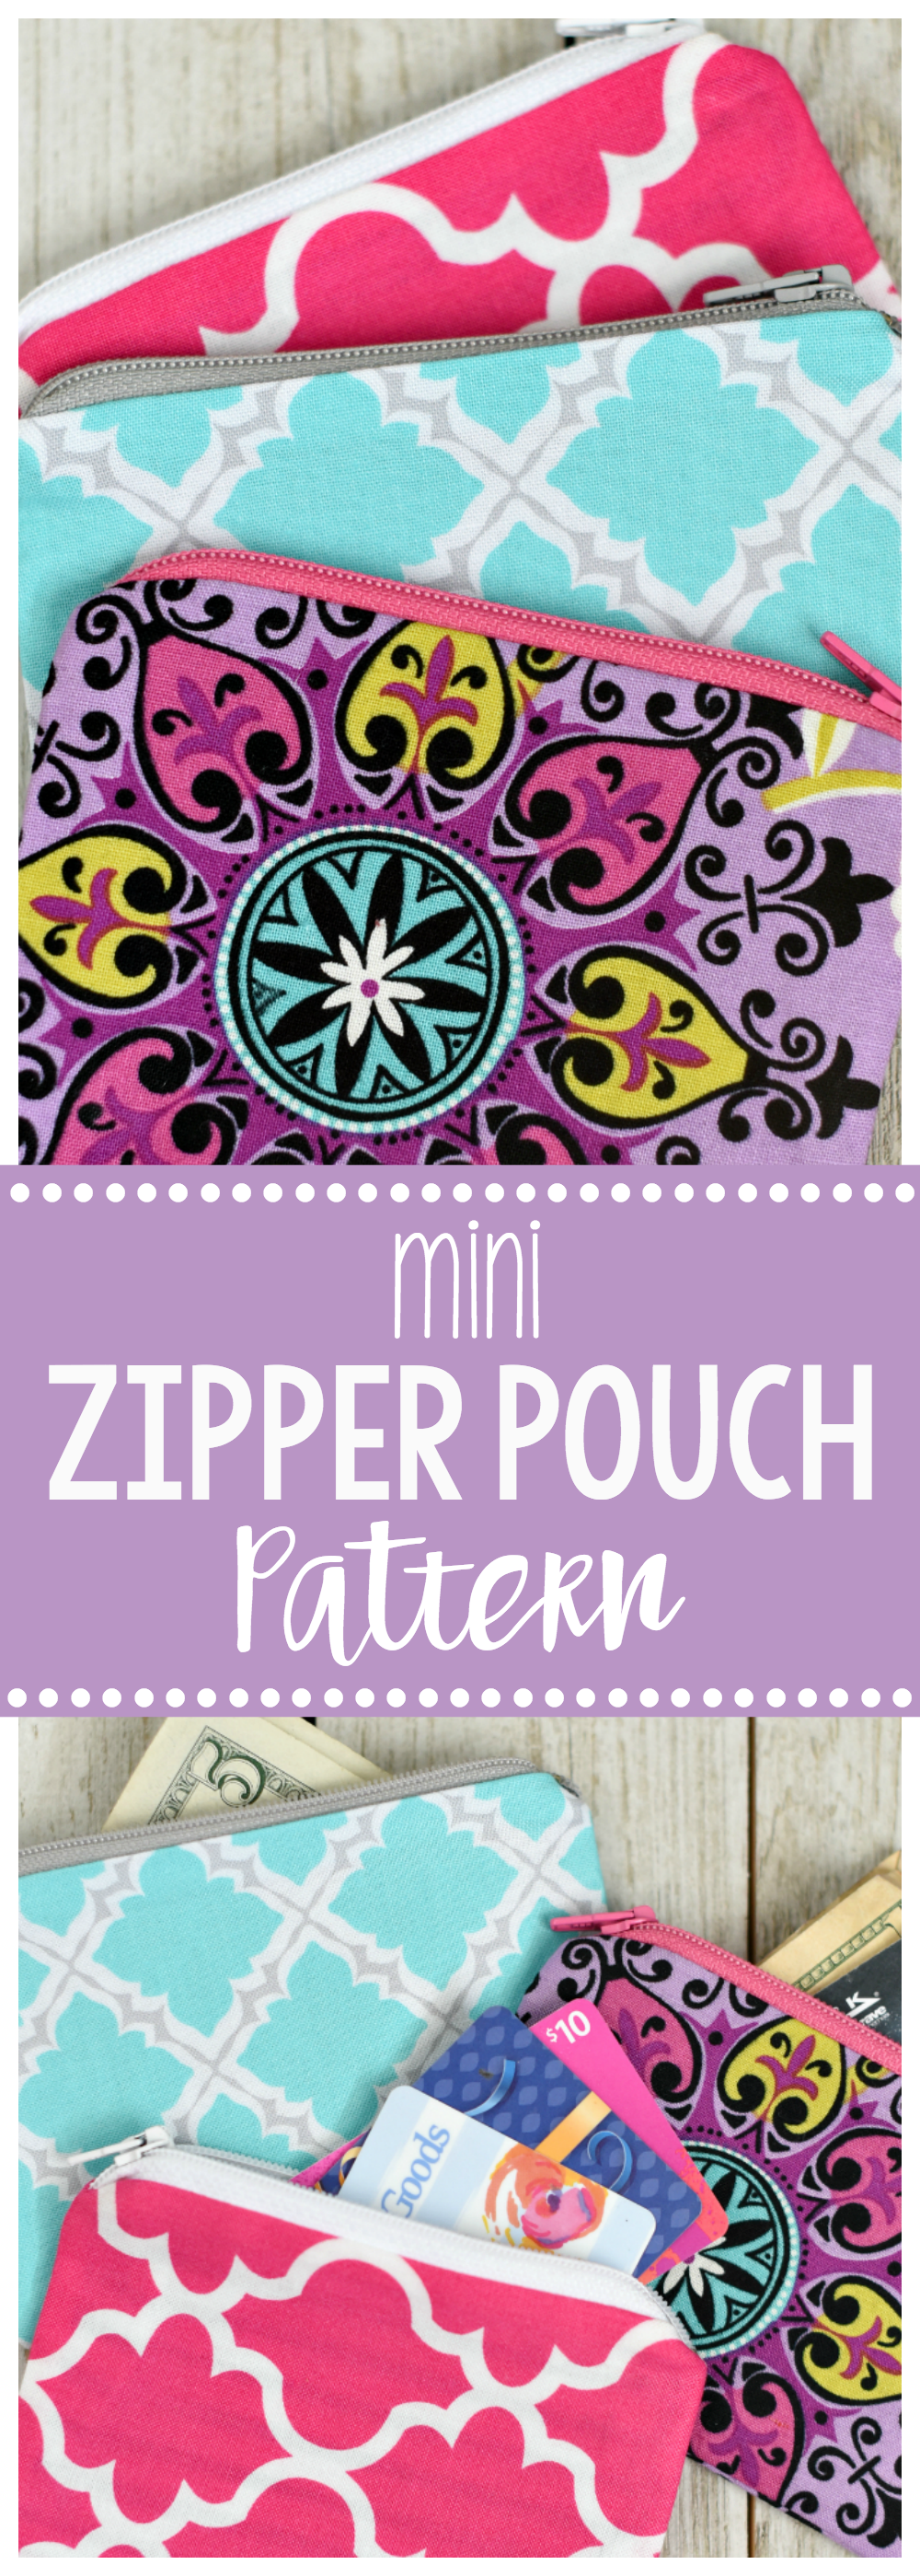 Mini Zipper Pouch or Coin Purse Pattern-This is a fun and easy sewing pattern and makes a great beginner sewing project if you want to try your hand at zippers. Cute and fun to sew! #sew #sewingpatterns #sewingpatternsfree